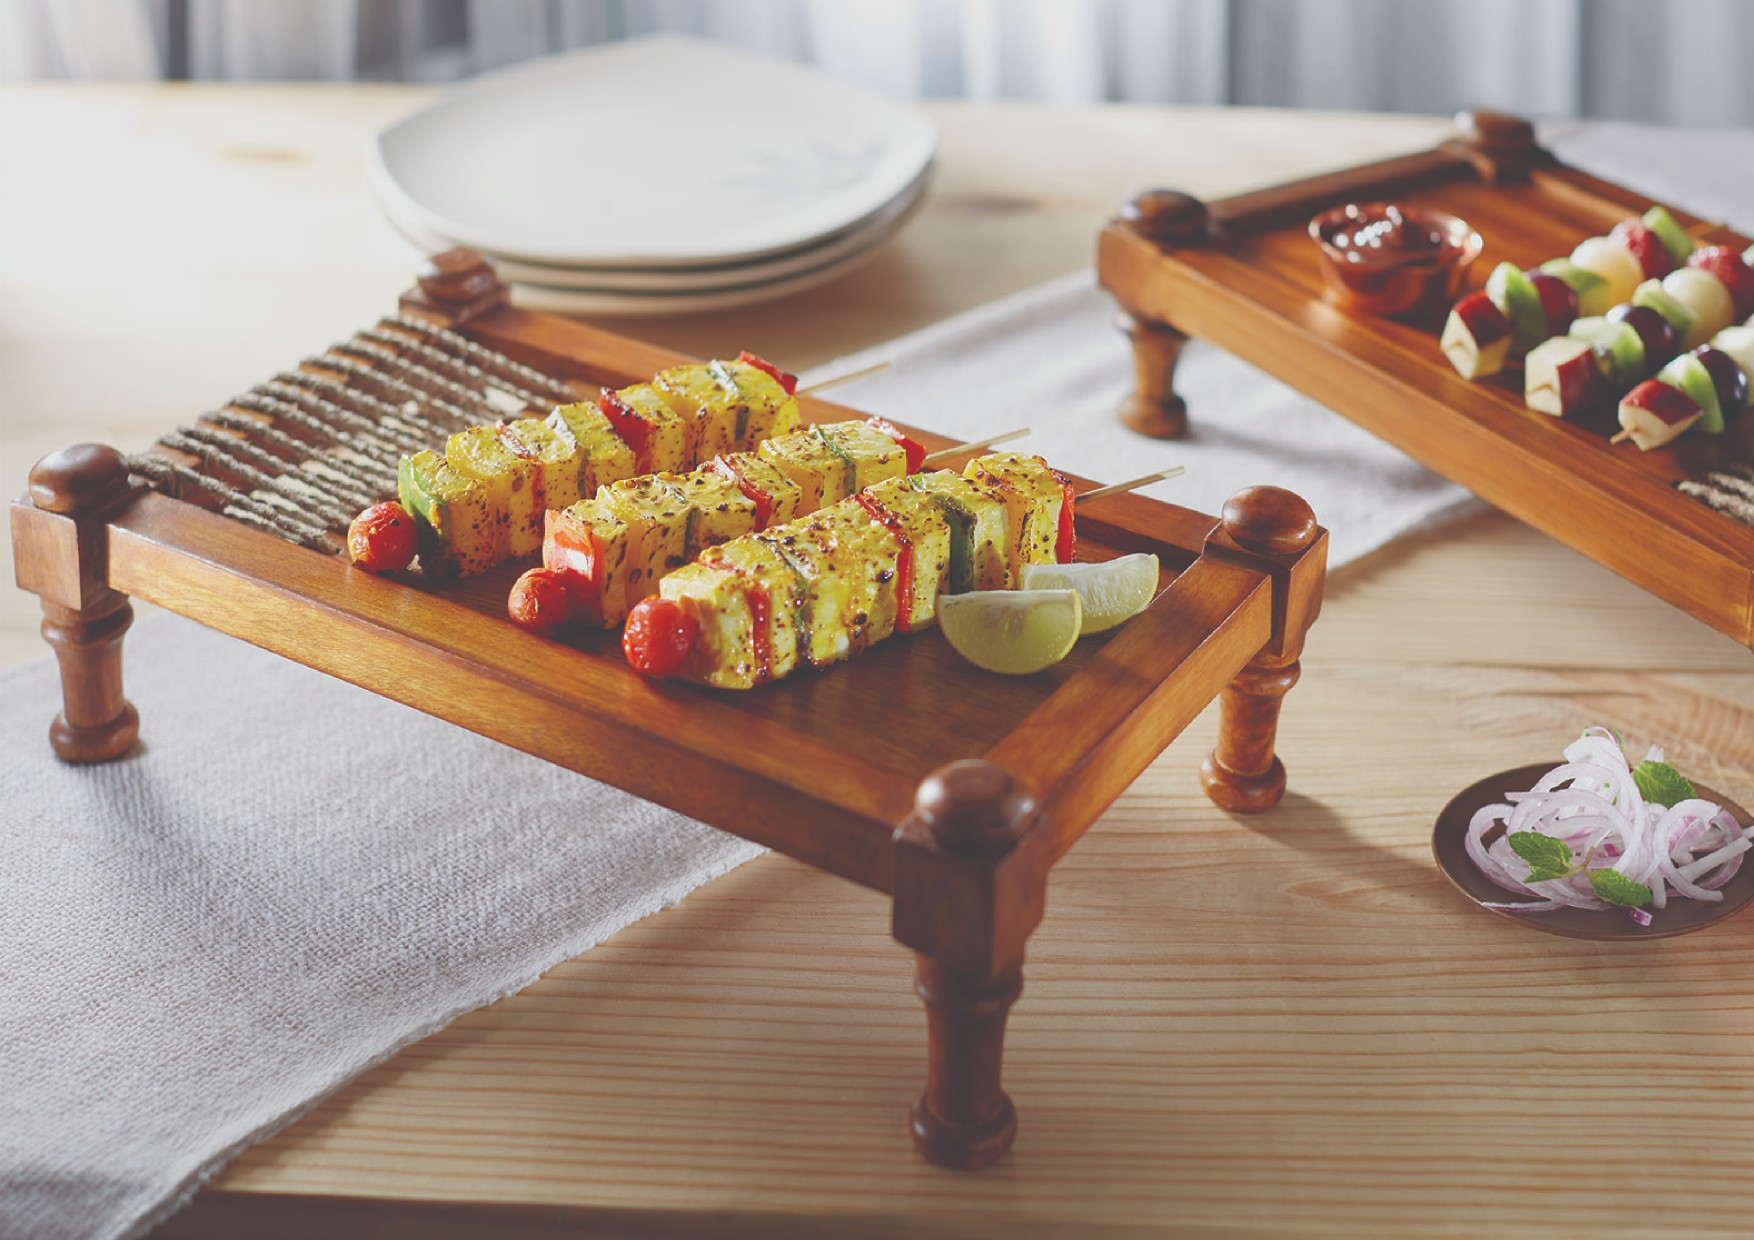 Songbird Tandoori Zaika Khat Serving Sets in Natural Wood Colour by Songbird